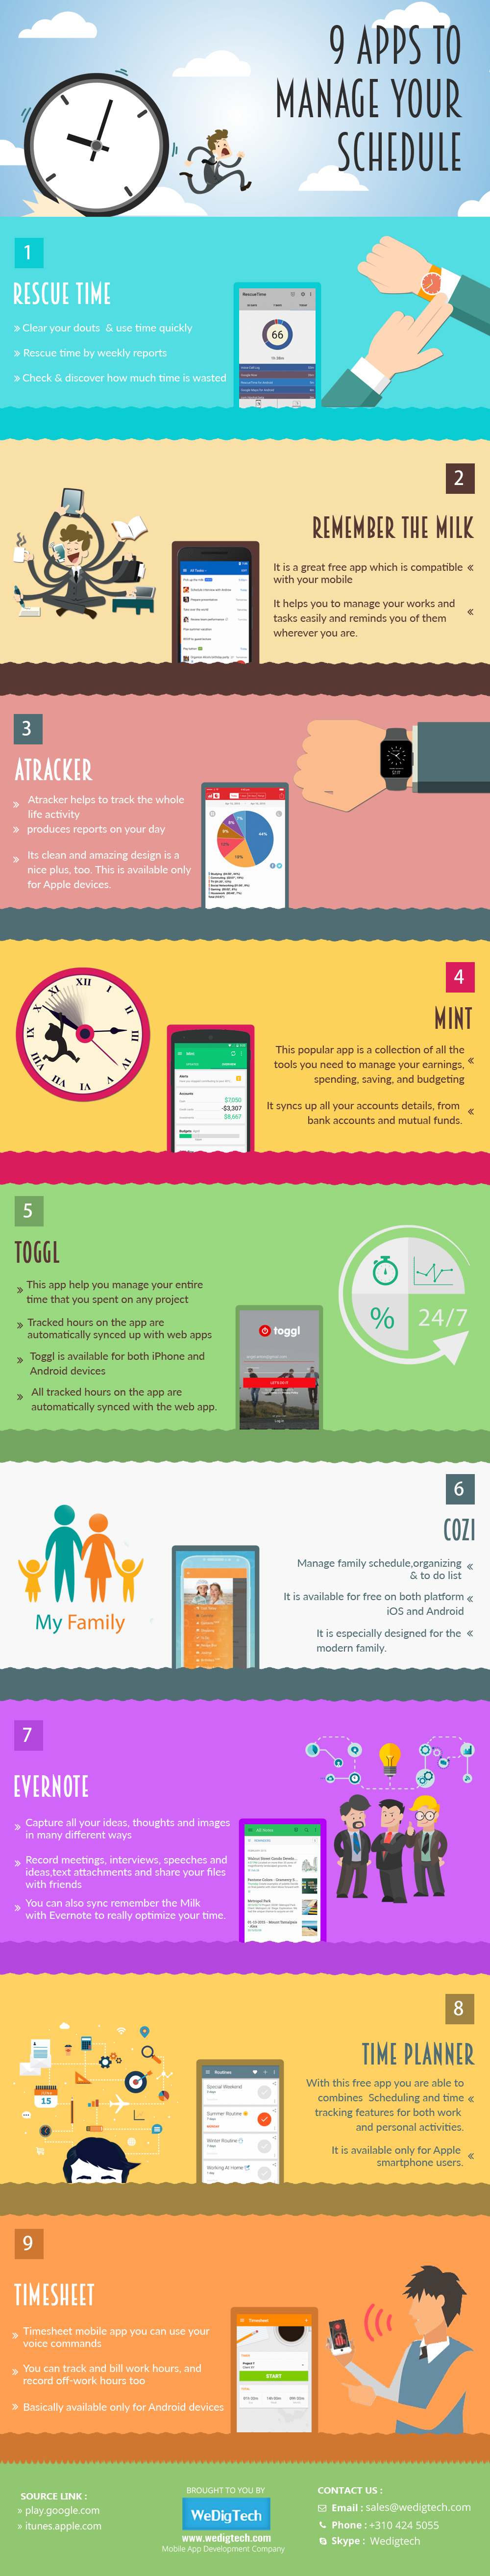 9 Apps Manage Schedule - Time Scheduling App InfoGraphics